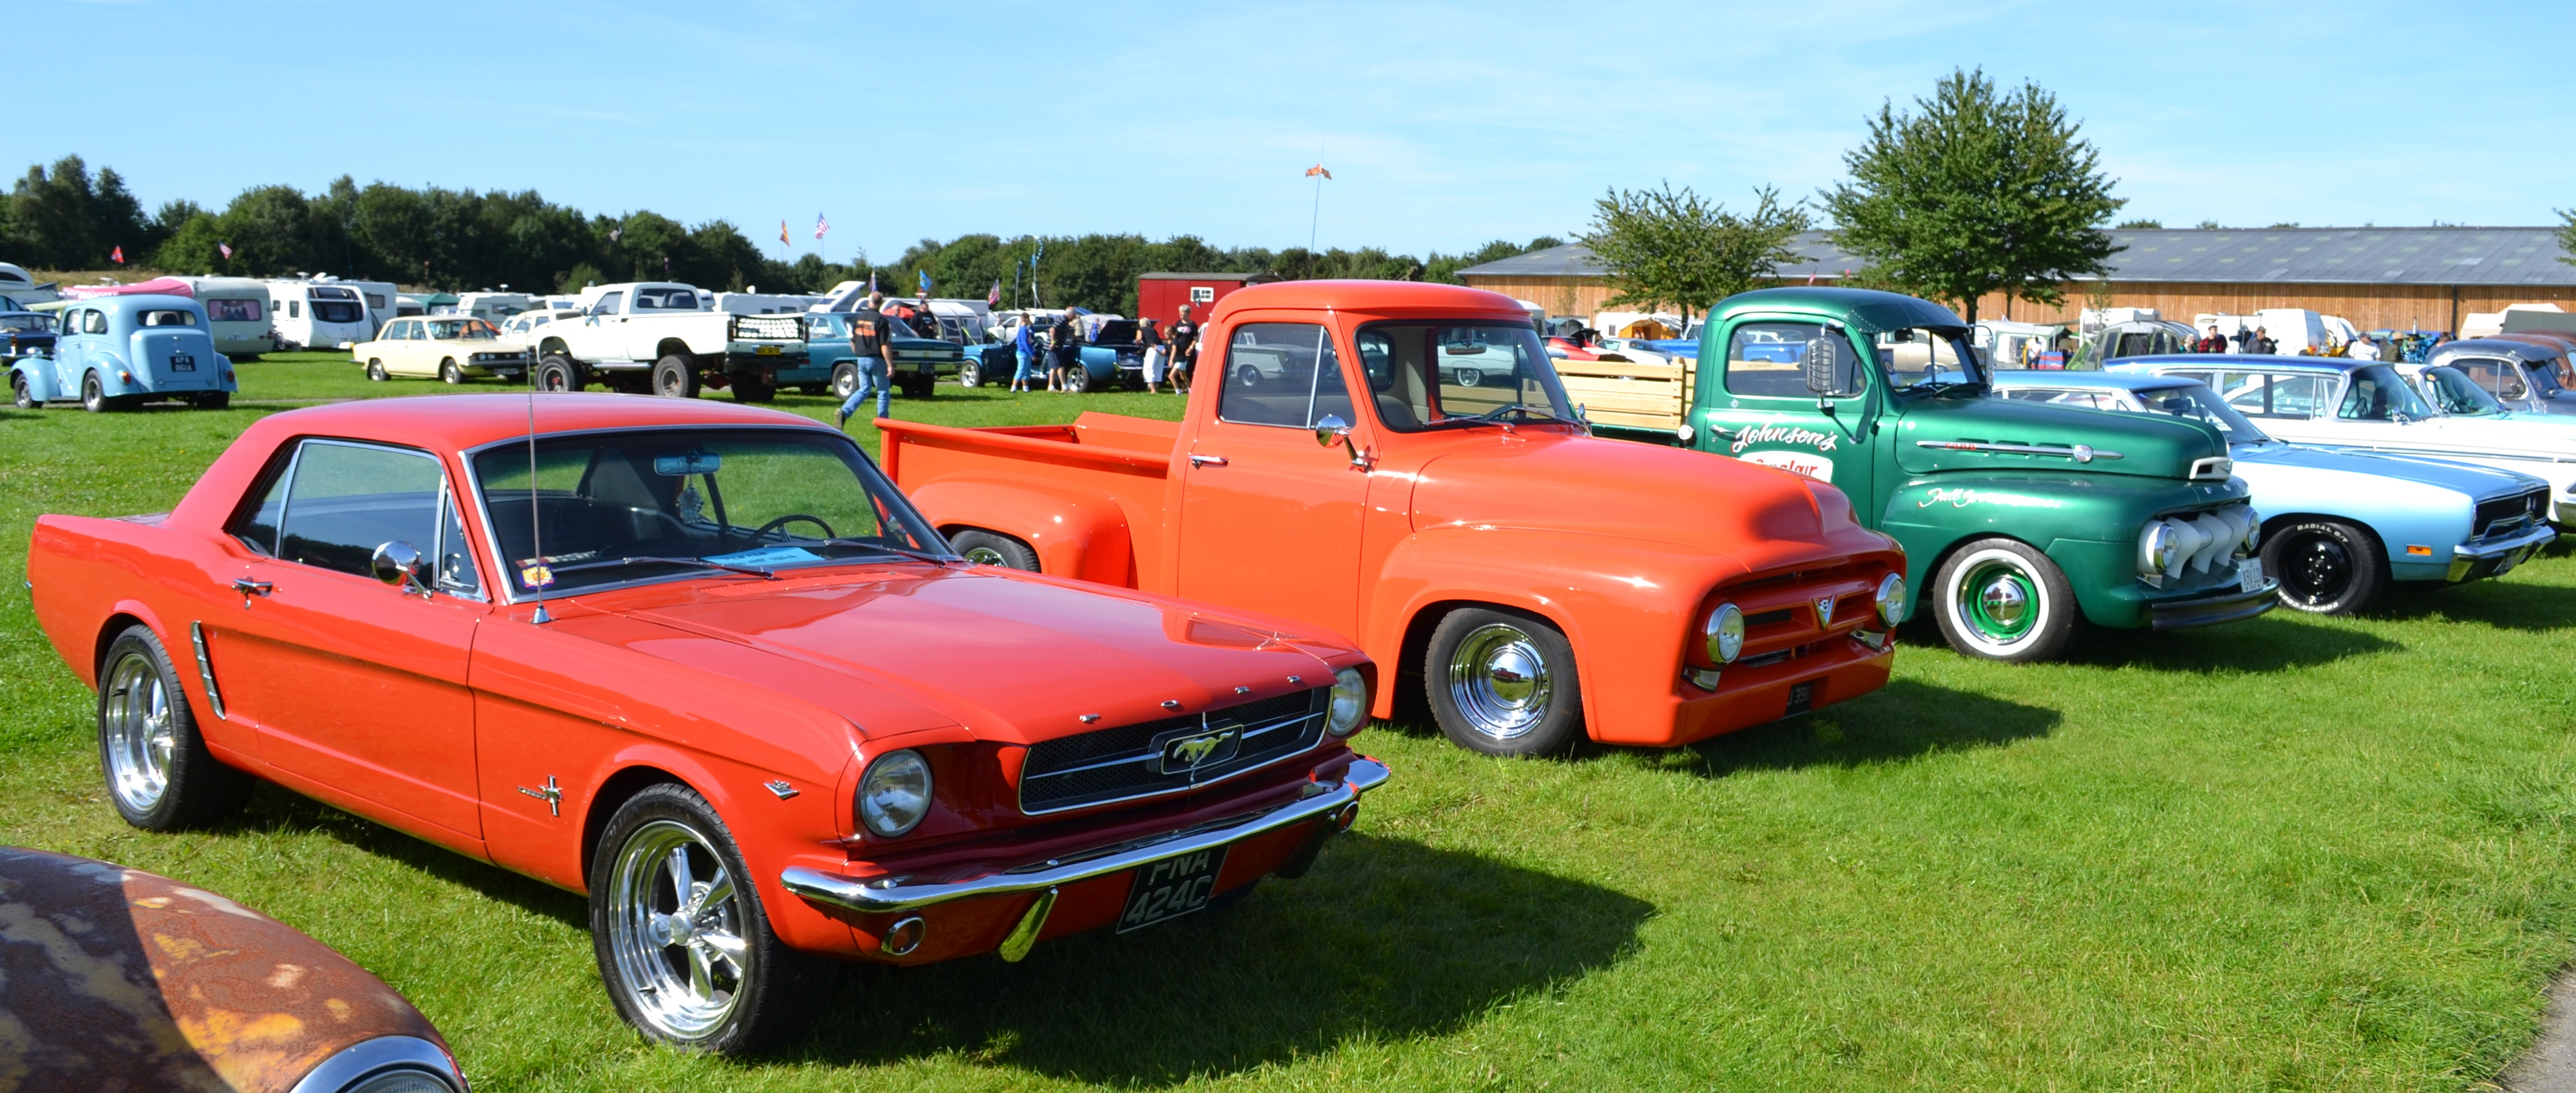 Classic Car Shows Uk August